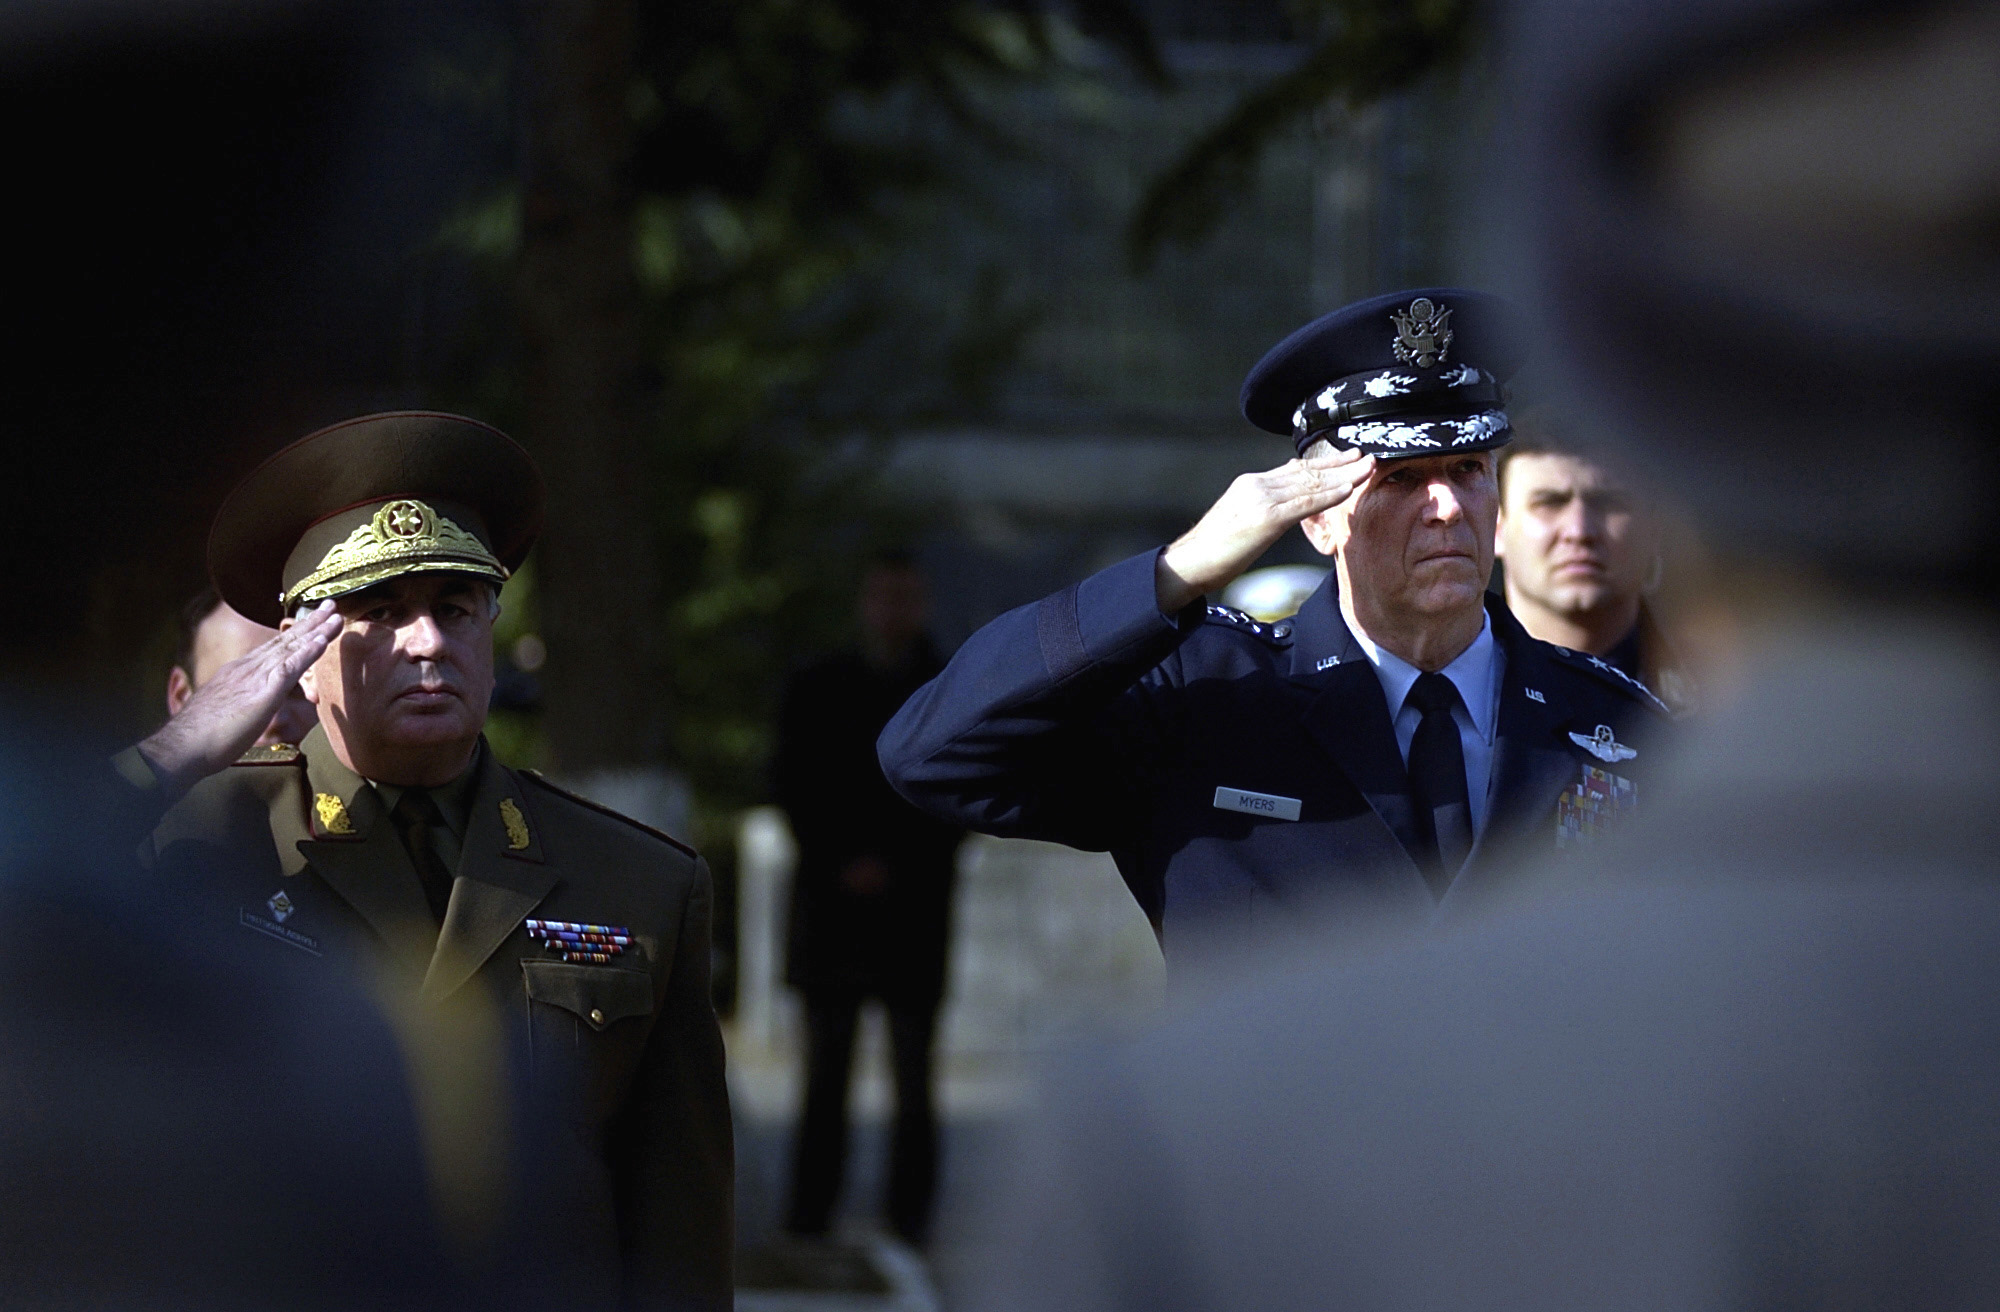 US Air Force (USAF) General (GEN) Richard B. Myers (right), Chairman of the Joint Chiefs of STAFF (JCS), and Georgian General Lieutenant Joni Pirtskhalaishvili, CHIEF of the General STAFF for the Republic of Georgia, salute during the playing of the American and Georgian national anthems. Both will meet with top military officials to discuss the Georgia Train and Equip Program (GTEP). GTEP is a flexible, time phased training initiative that builds upon a strong military-to-military relationship developed between the US and the Republic of Georgia since the end of the Cold War, and further underscores US support for the Republic of Georgia's sovereignty, independence and territorial...